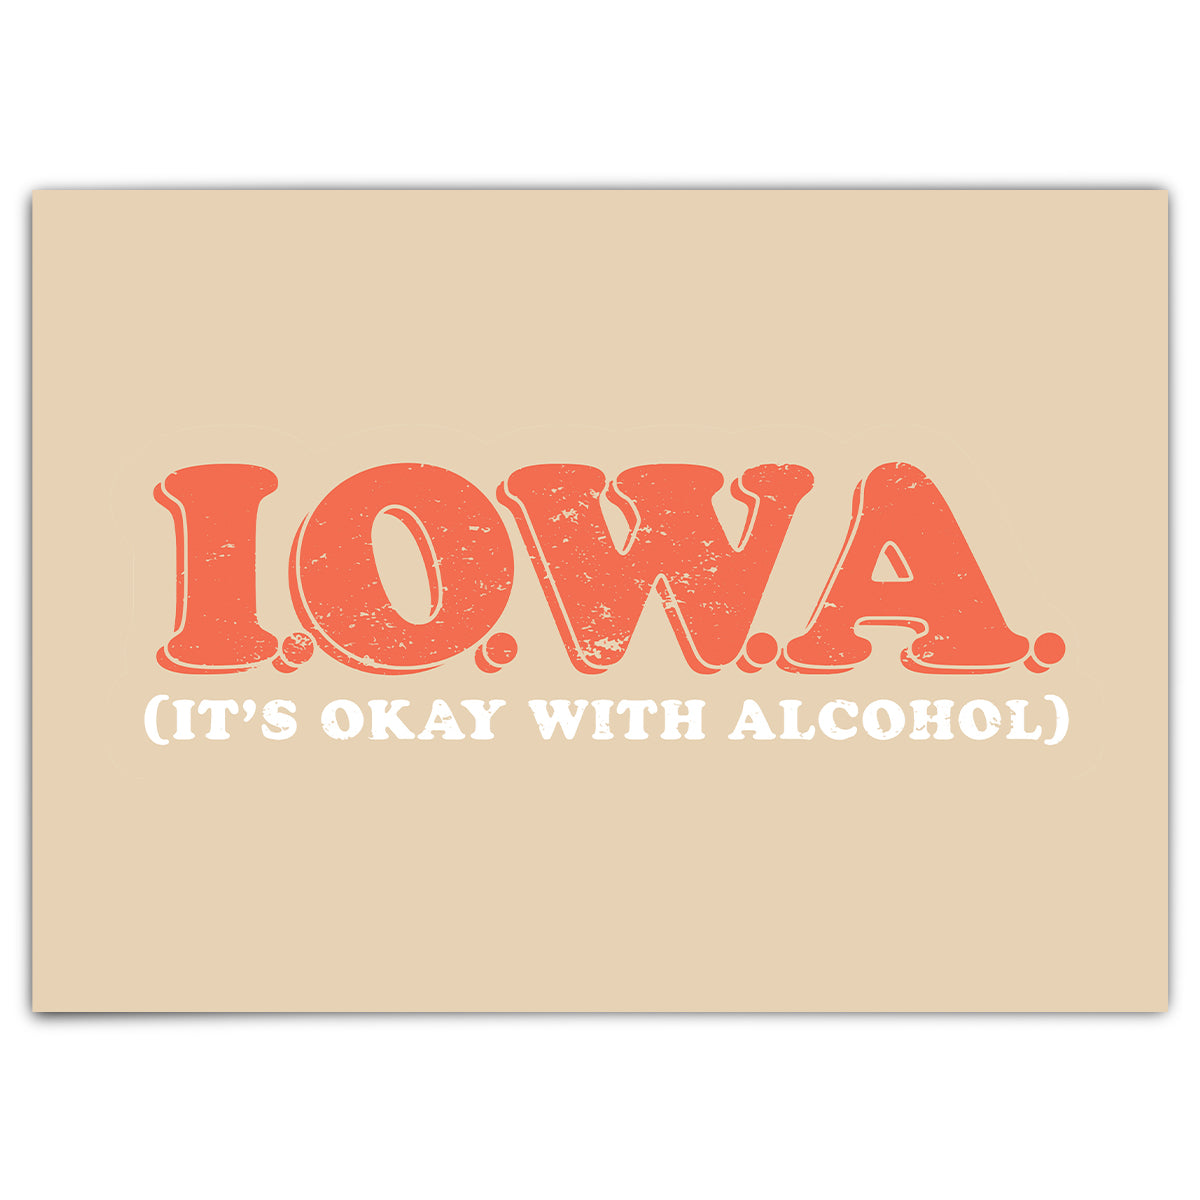 I.O.W.A. (It's Ok With Alcohol) Greeting Card